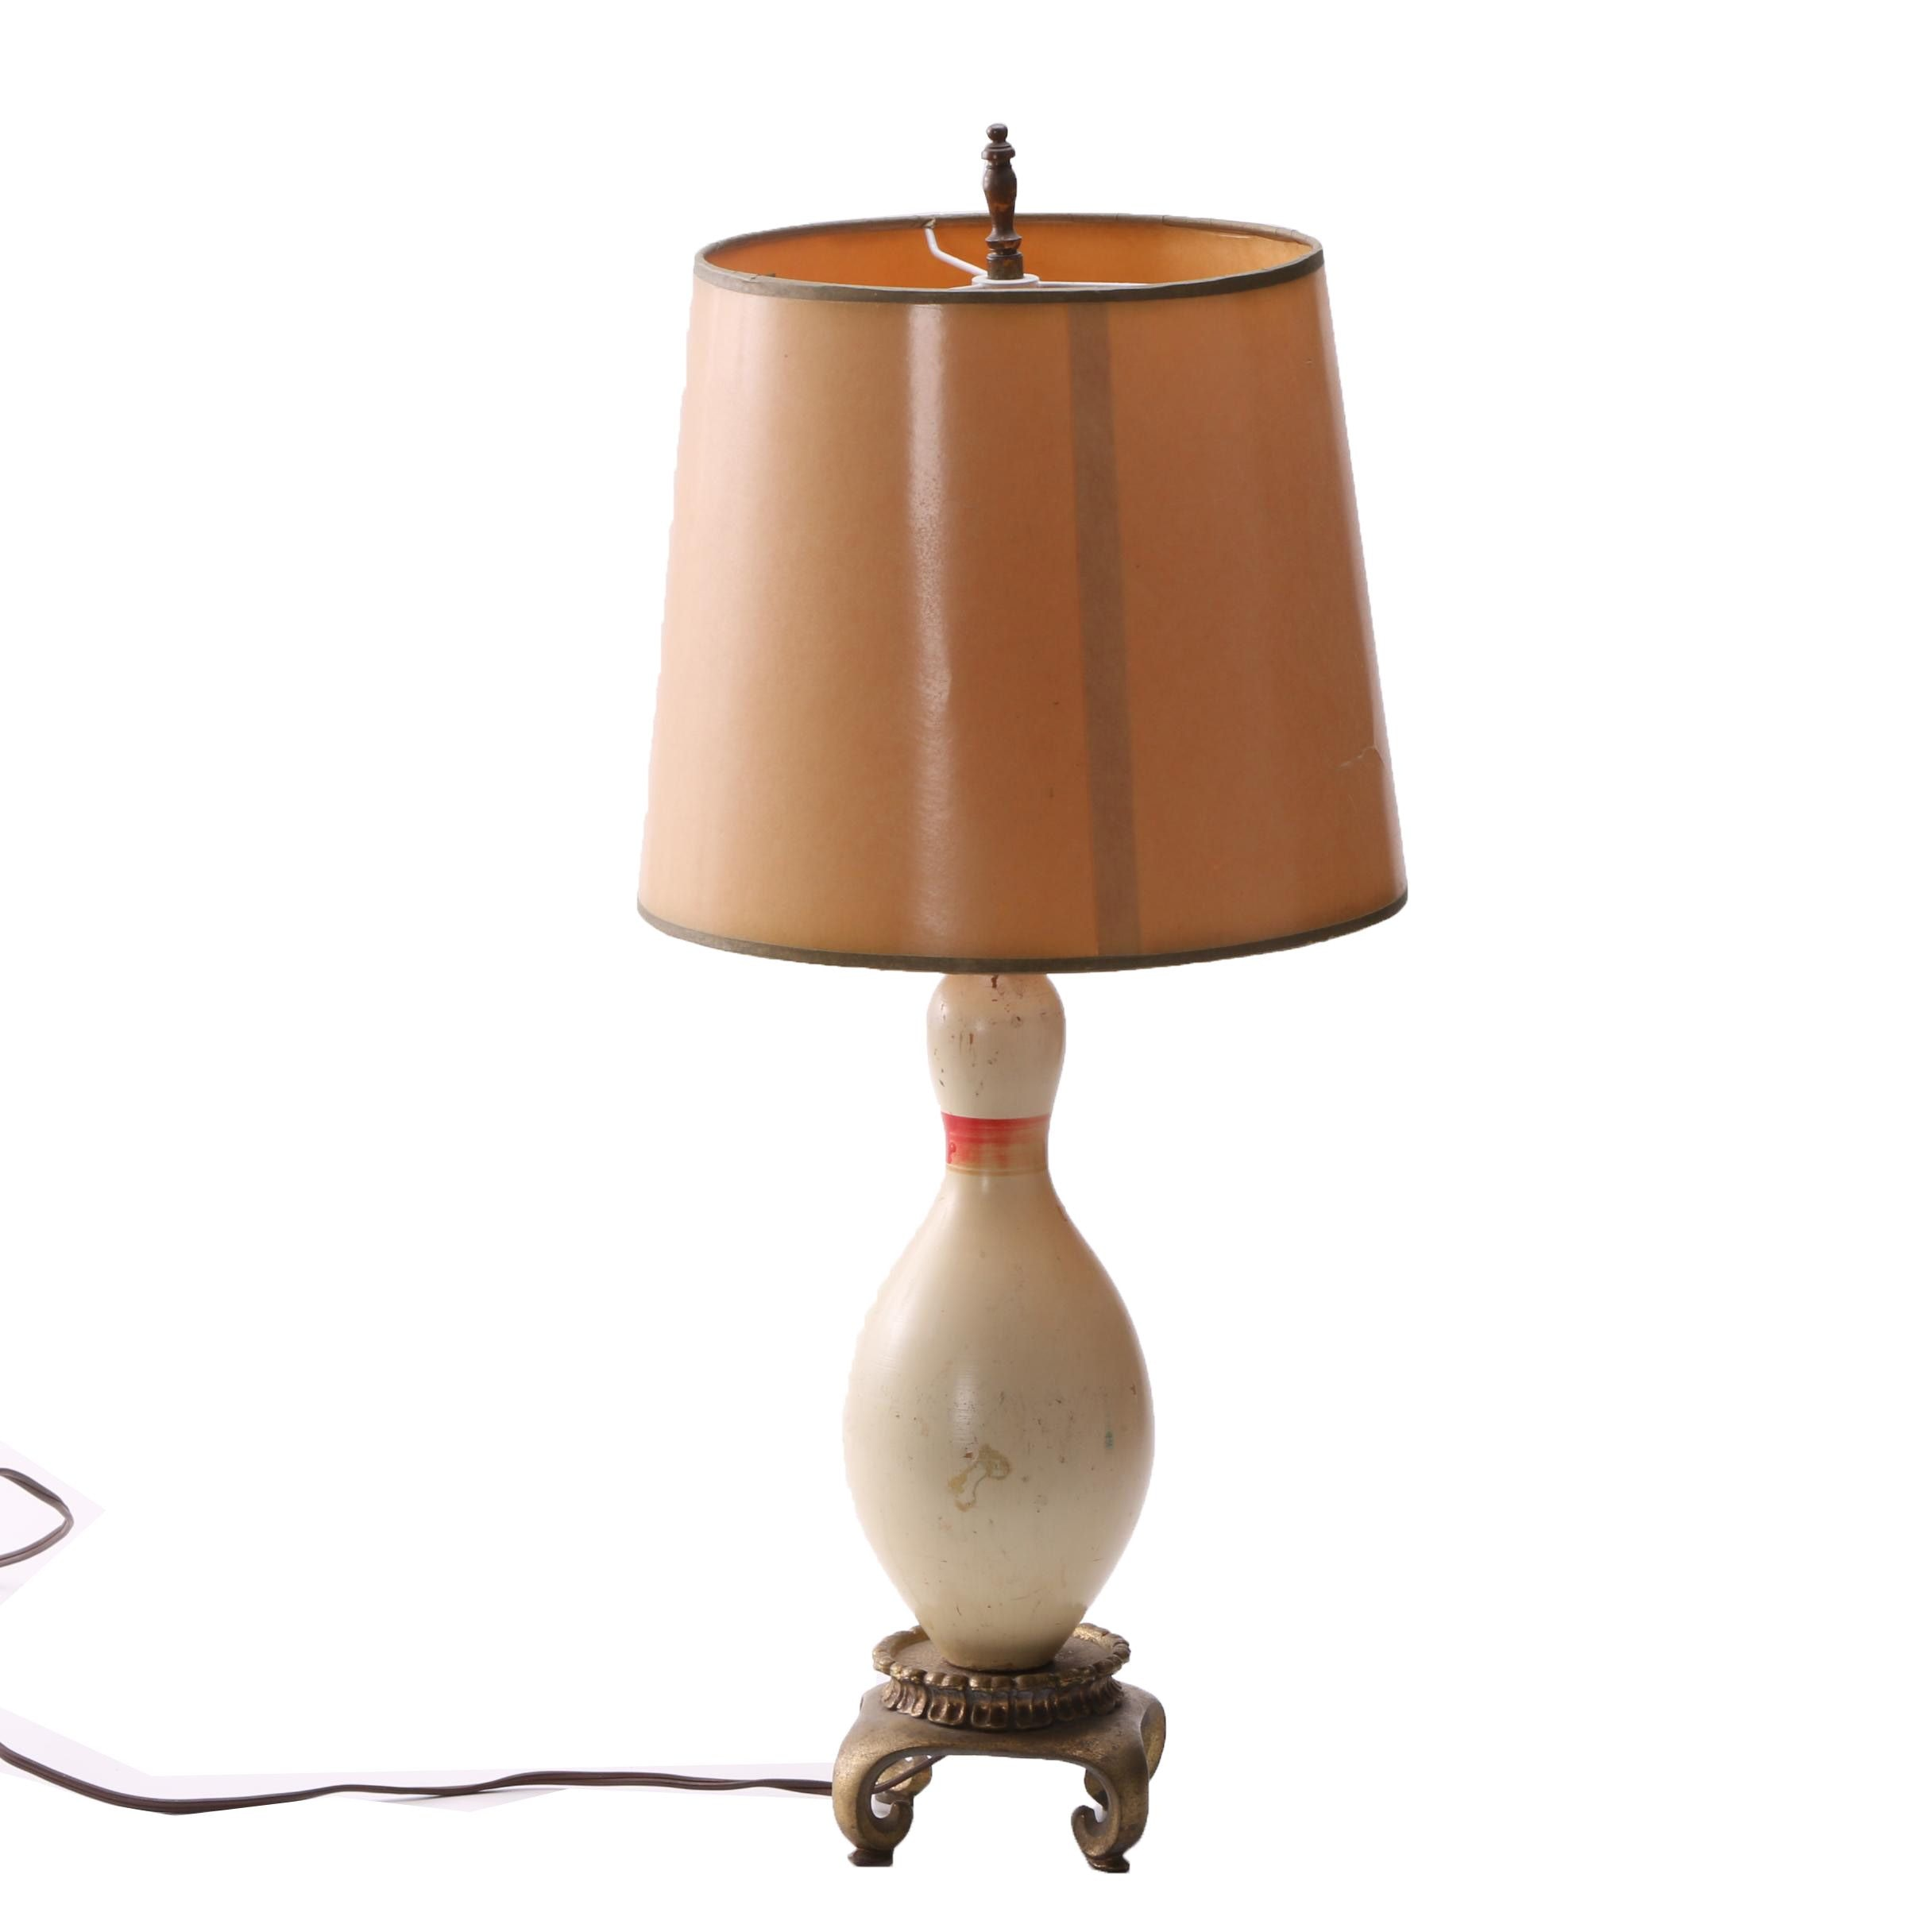 Vintage Table Lamp with Bowling Pin Base